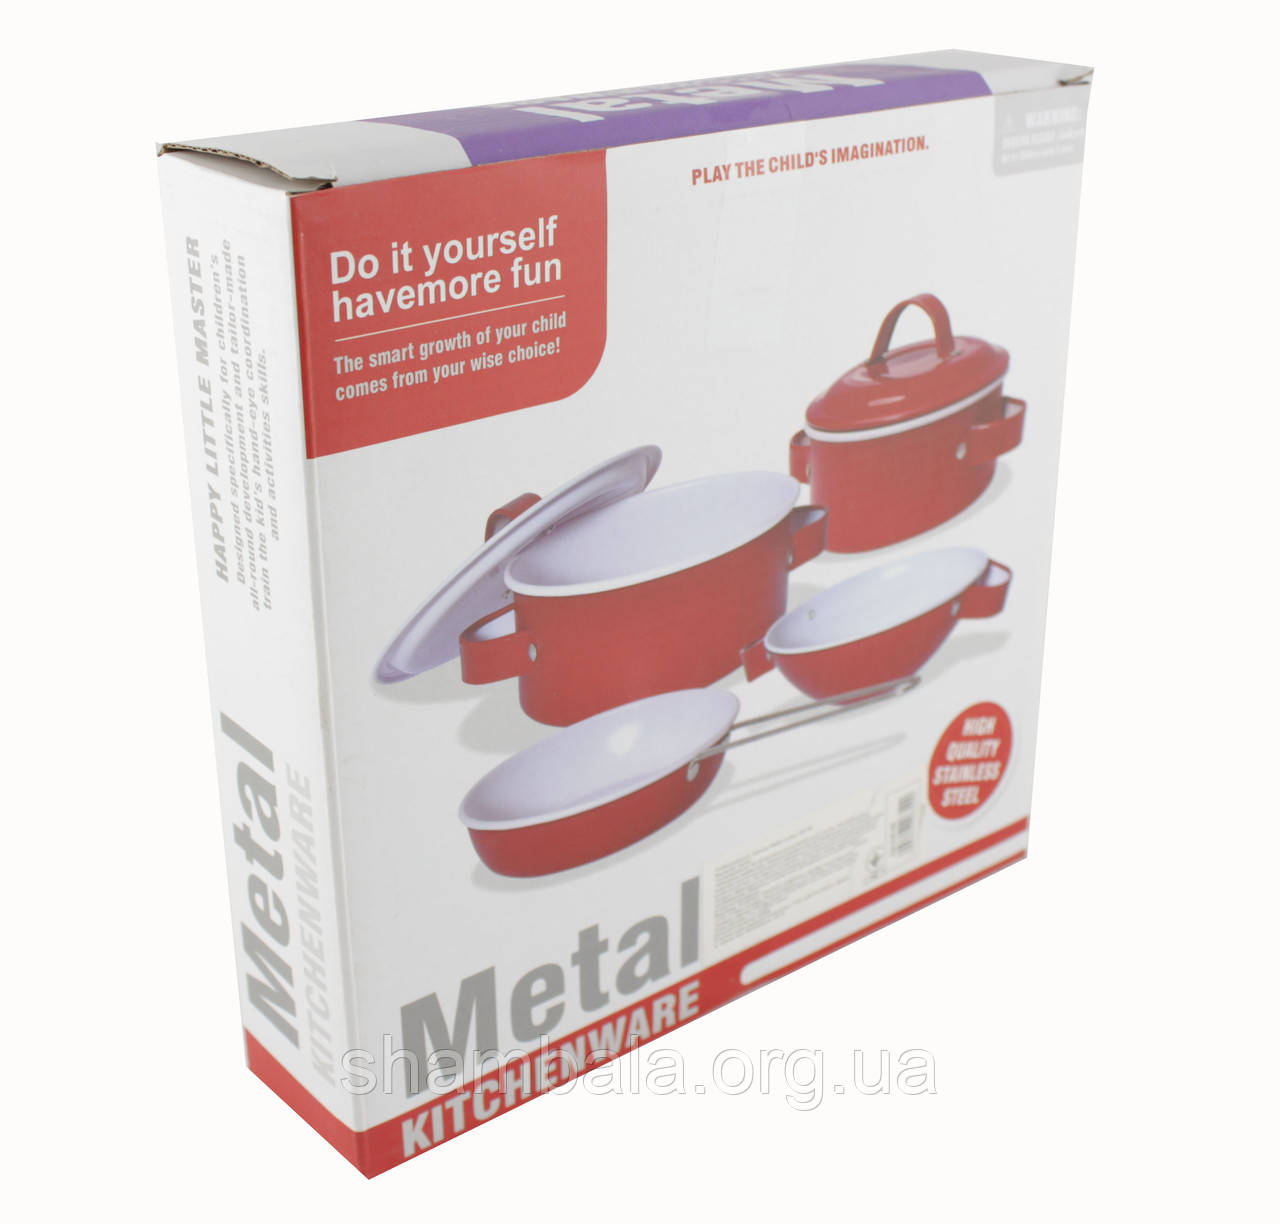 Сервиз Xingxing Yuan Metal Kitchenware детский (083681)